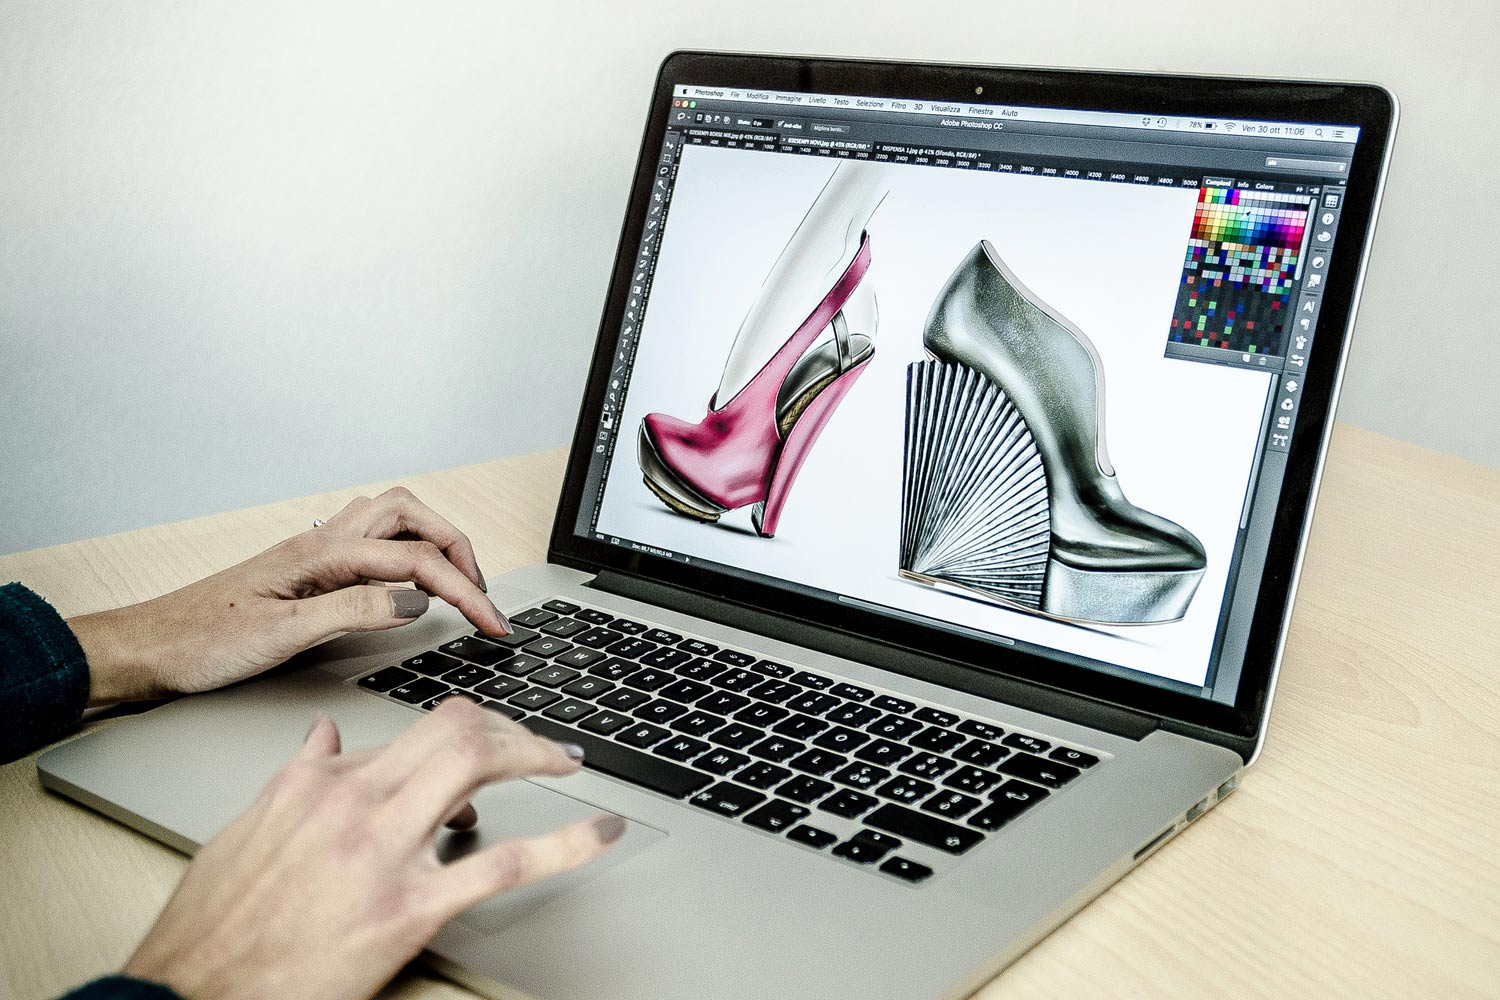 Lezione di Shoe Digital Design al corso Fashion Design